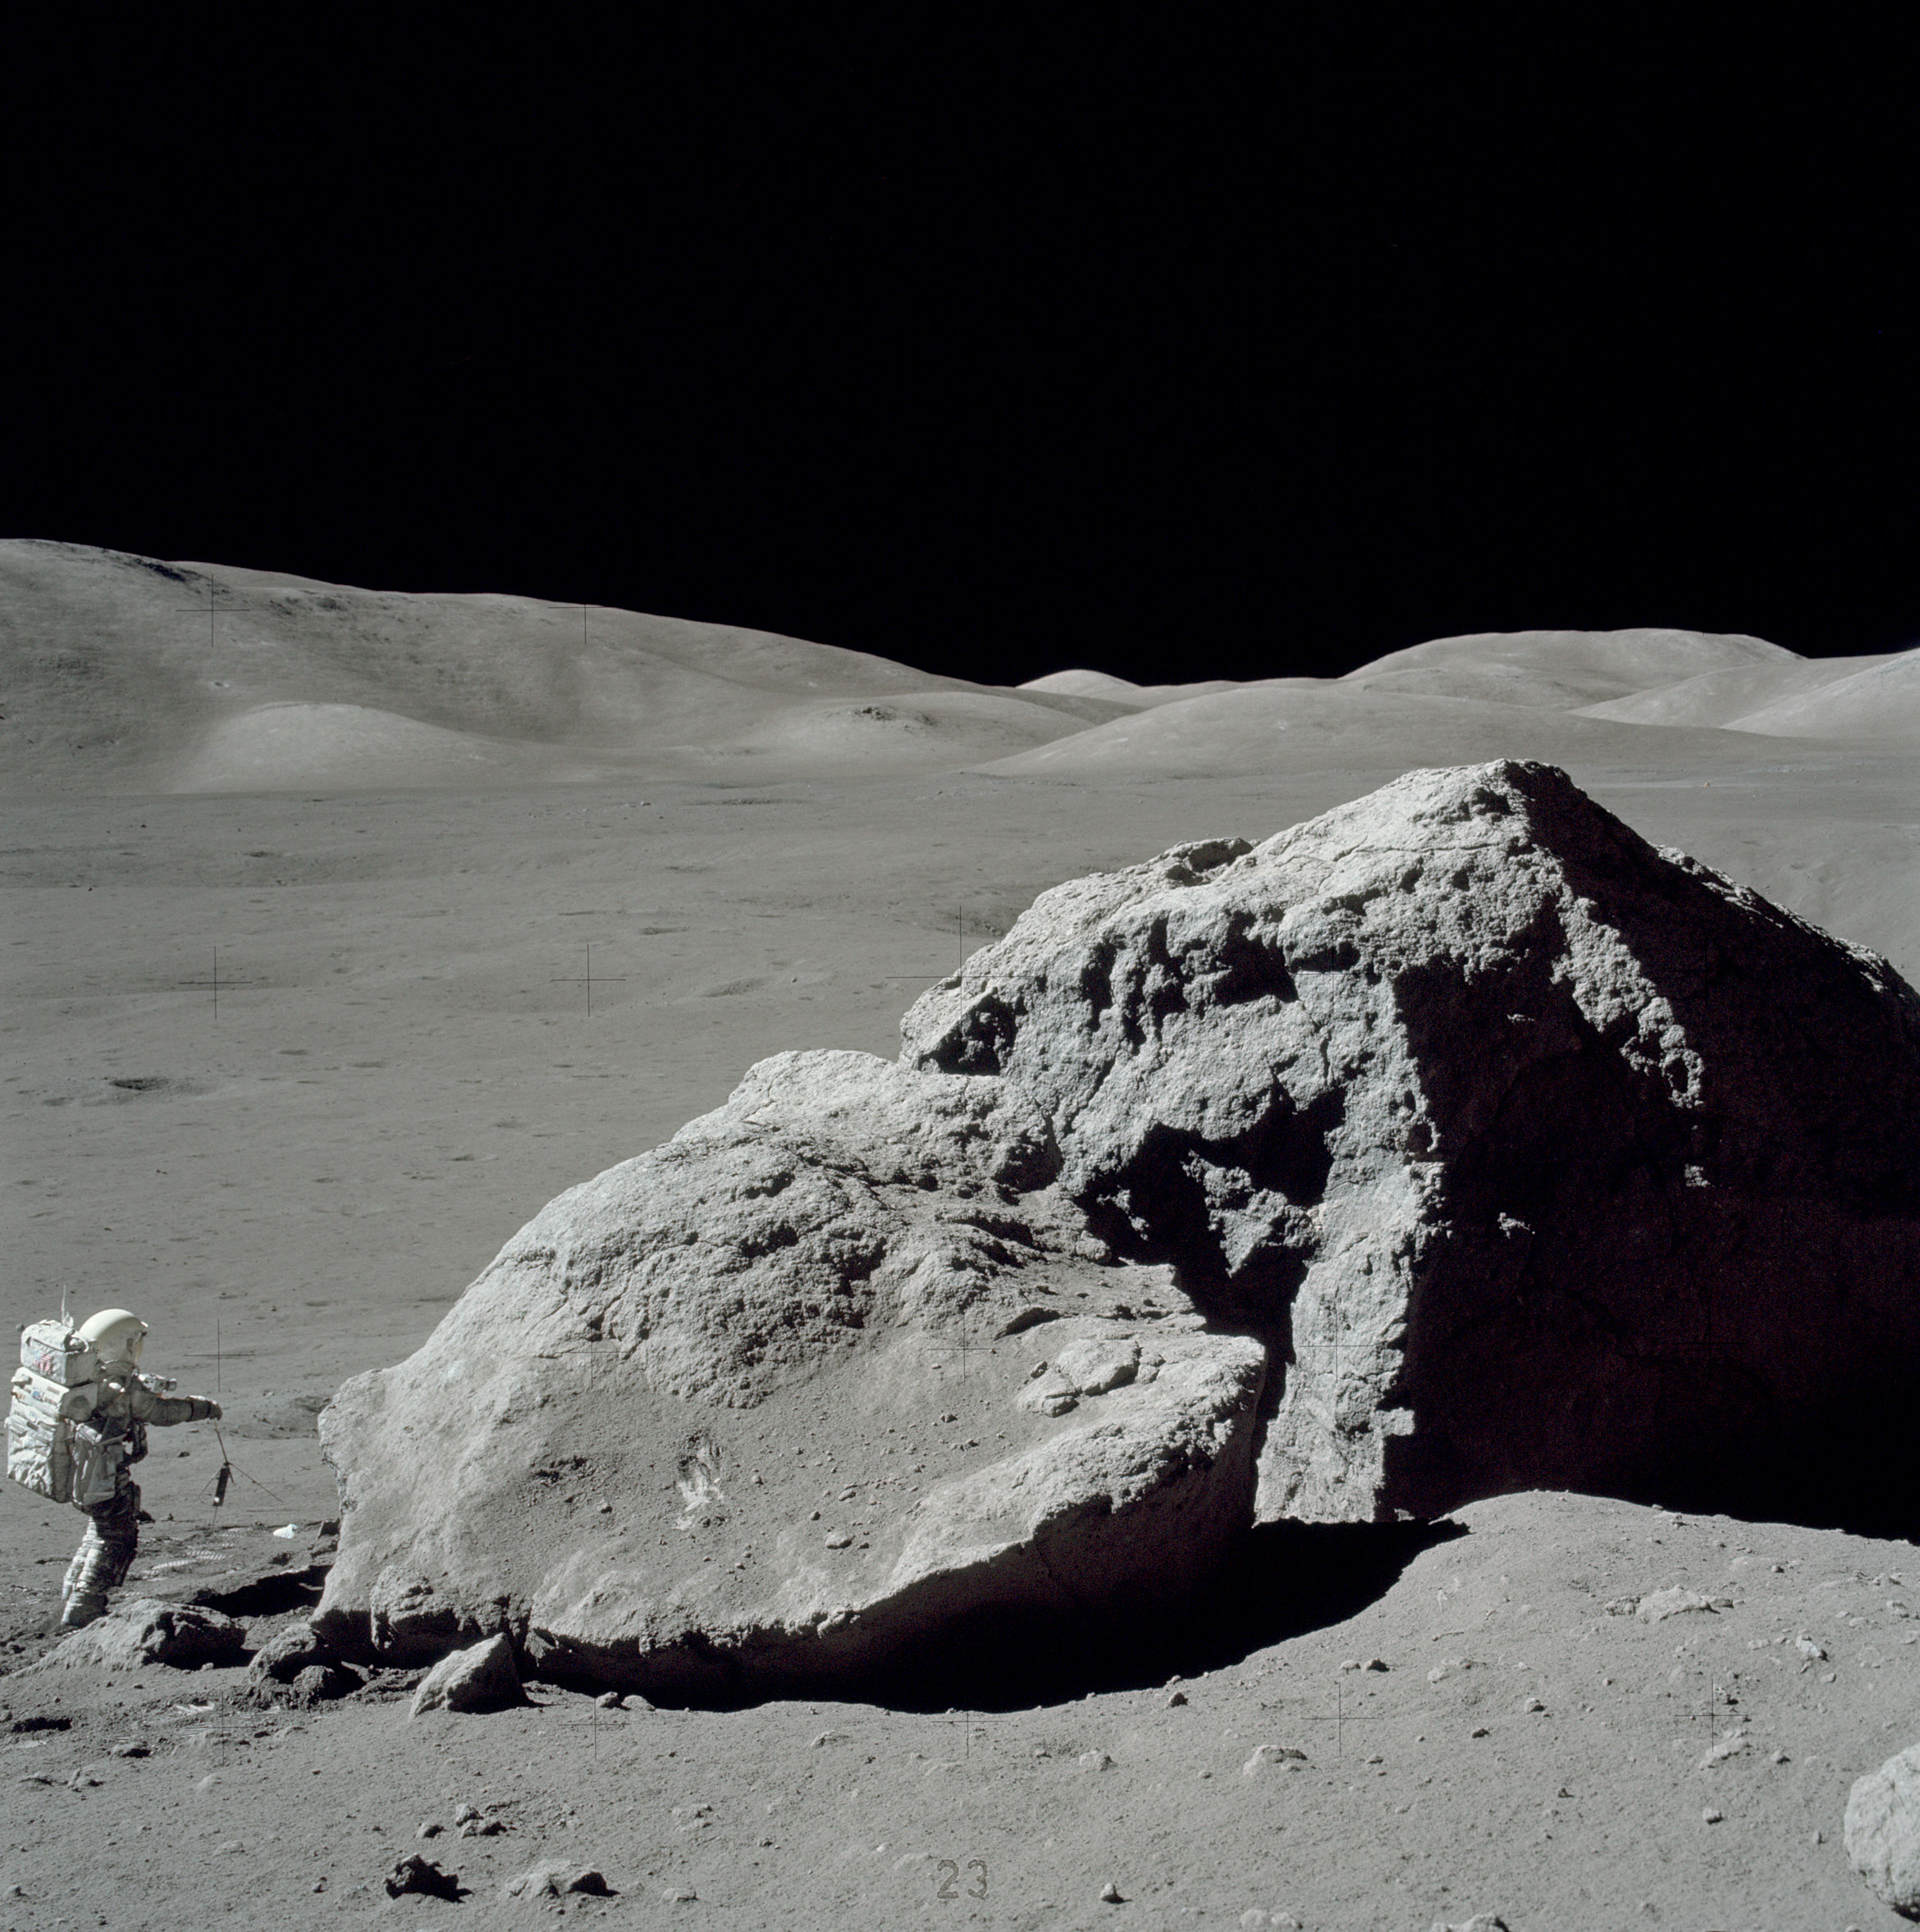 An Apollo 17 crewmember stands next to a boulder on the Moon